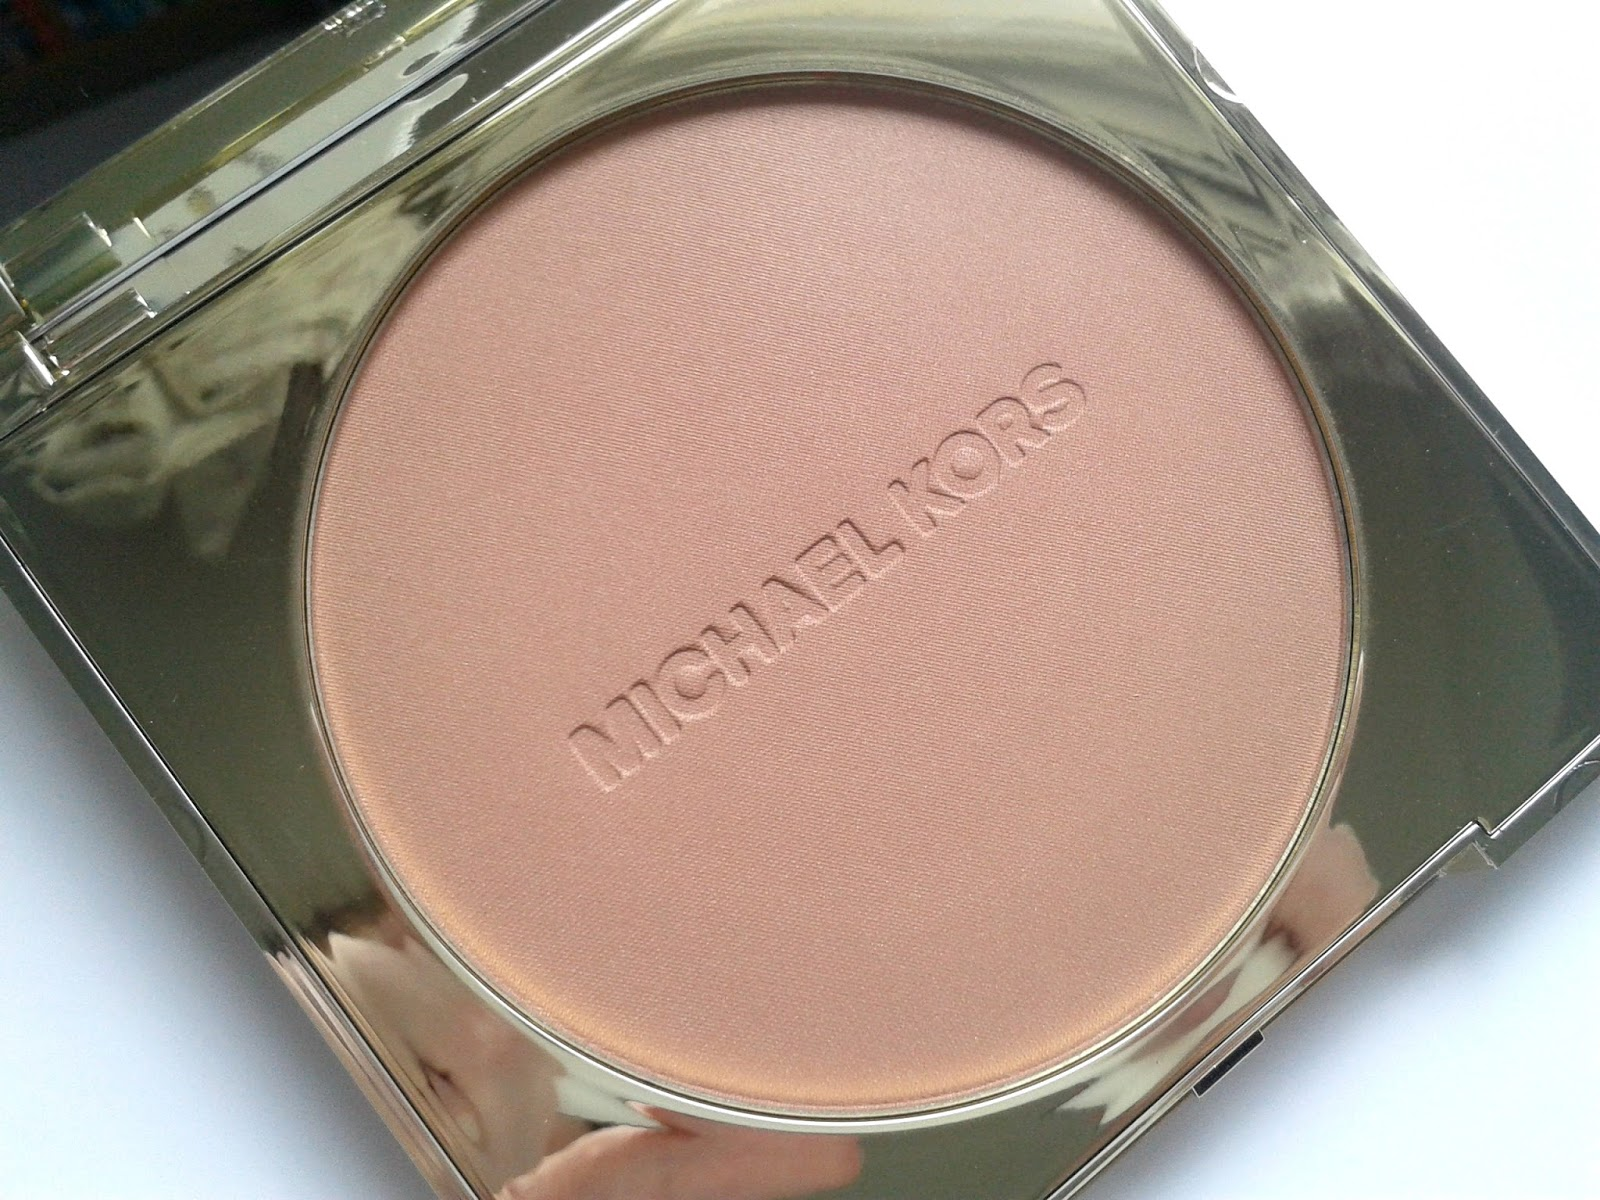 Michael Kors Bronze Powder in Glow Beauty Review Packaging